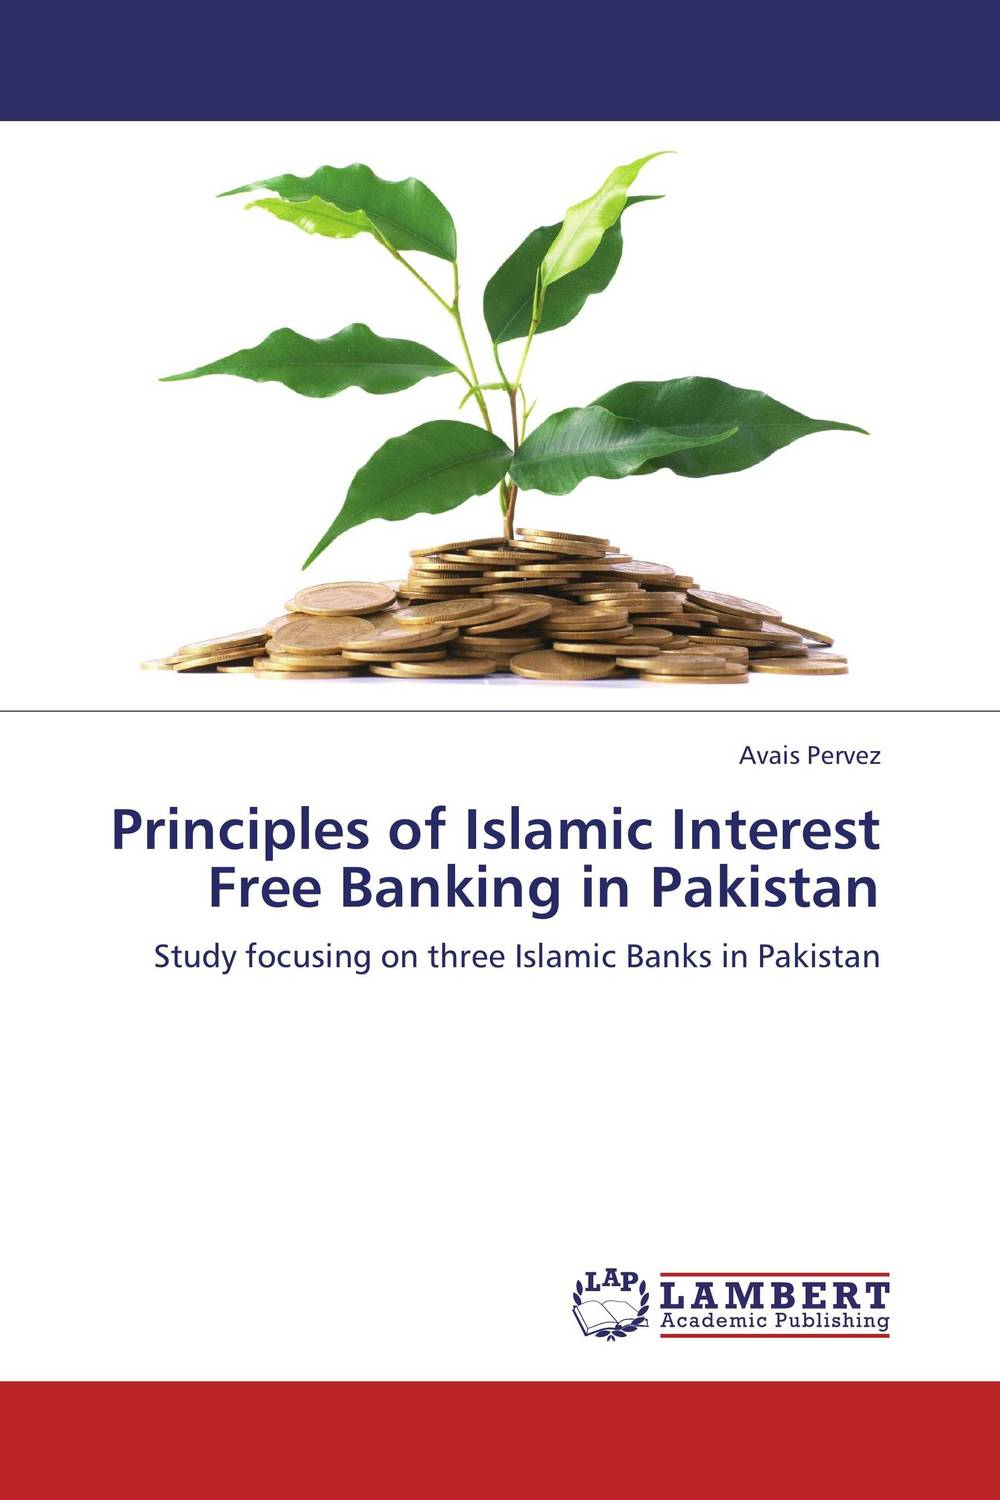 Principles of Islamic Interest Free Banking in Pakistan textiles of the islamic world